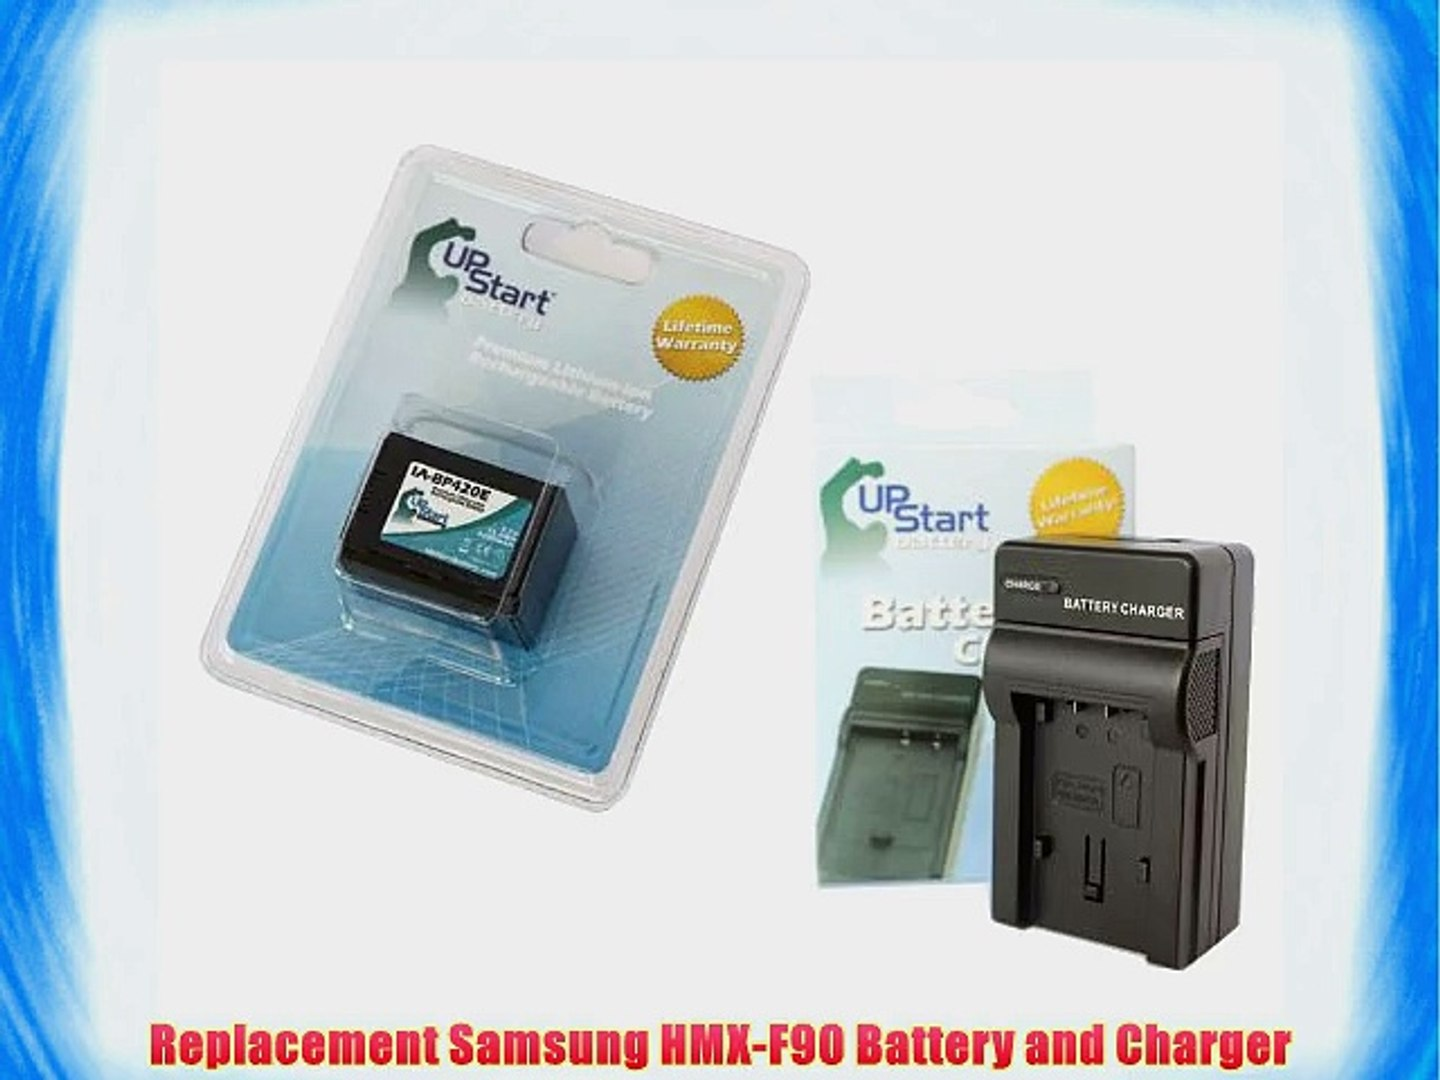 Samsung HMX-F90 Battery and Charger - Replacement for Samsung IA-BP420E Digital Camera Batteries